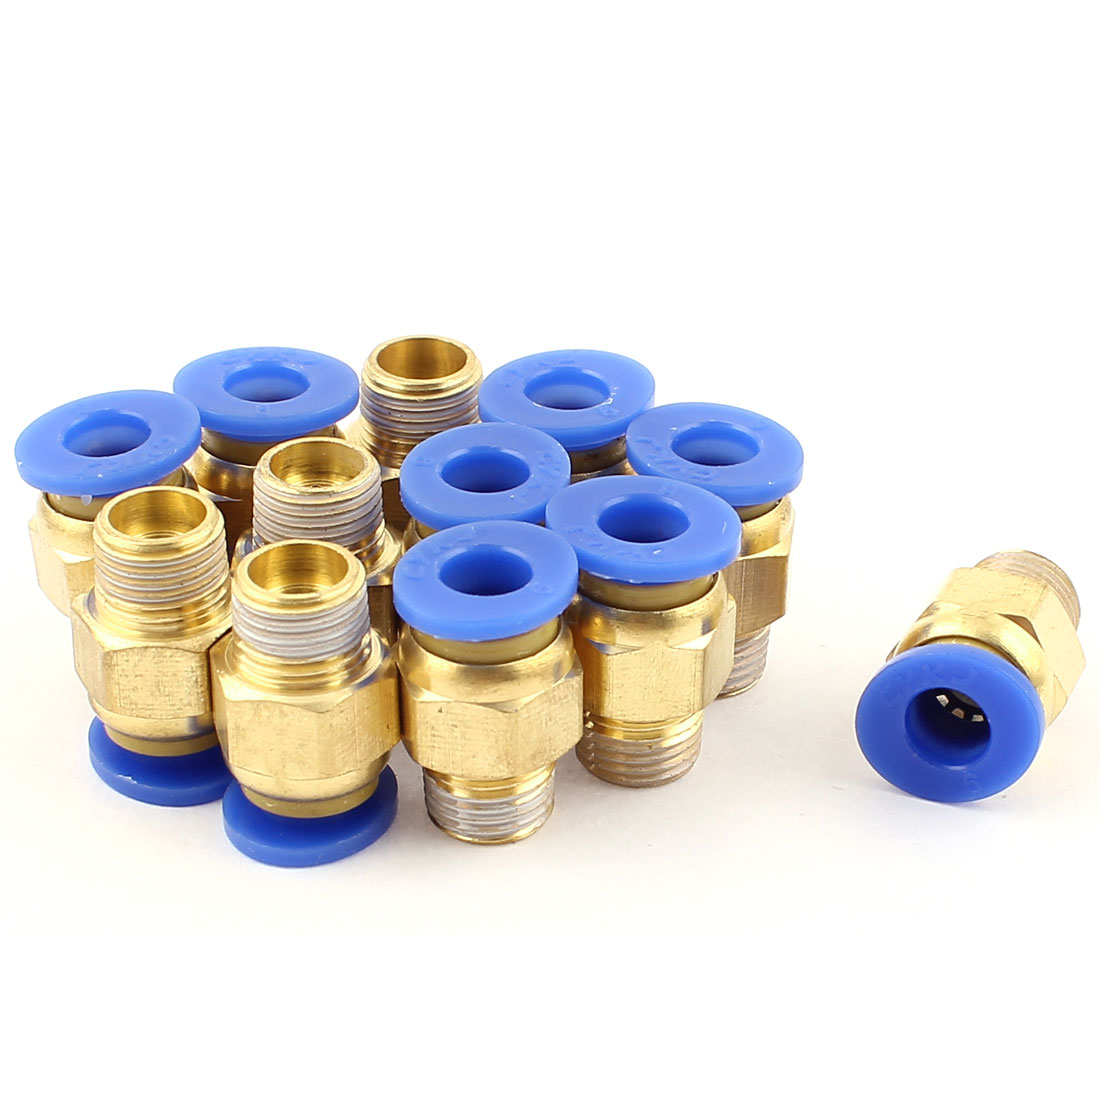 12 Pcs 6mm Tube to 1/8 BSP Thread Push in Quick Connect Coupler Fittings PC6-01